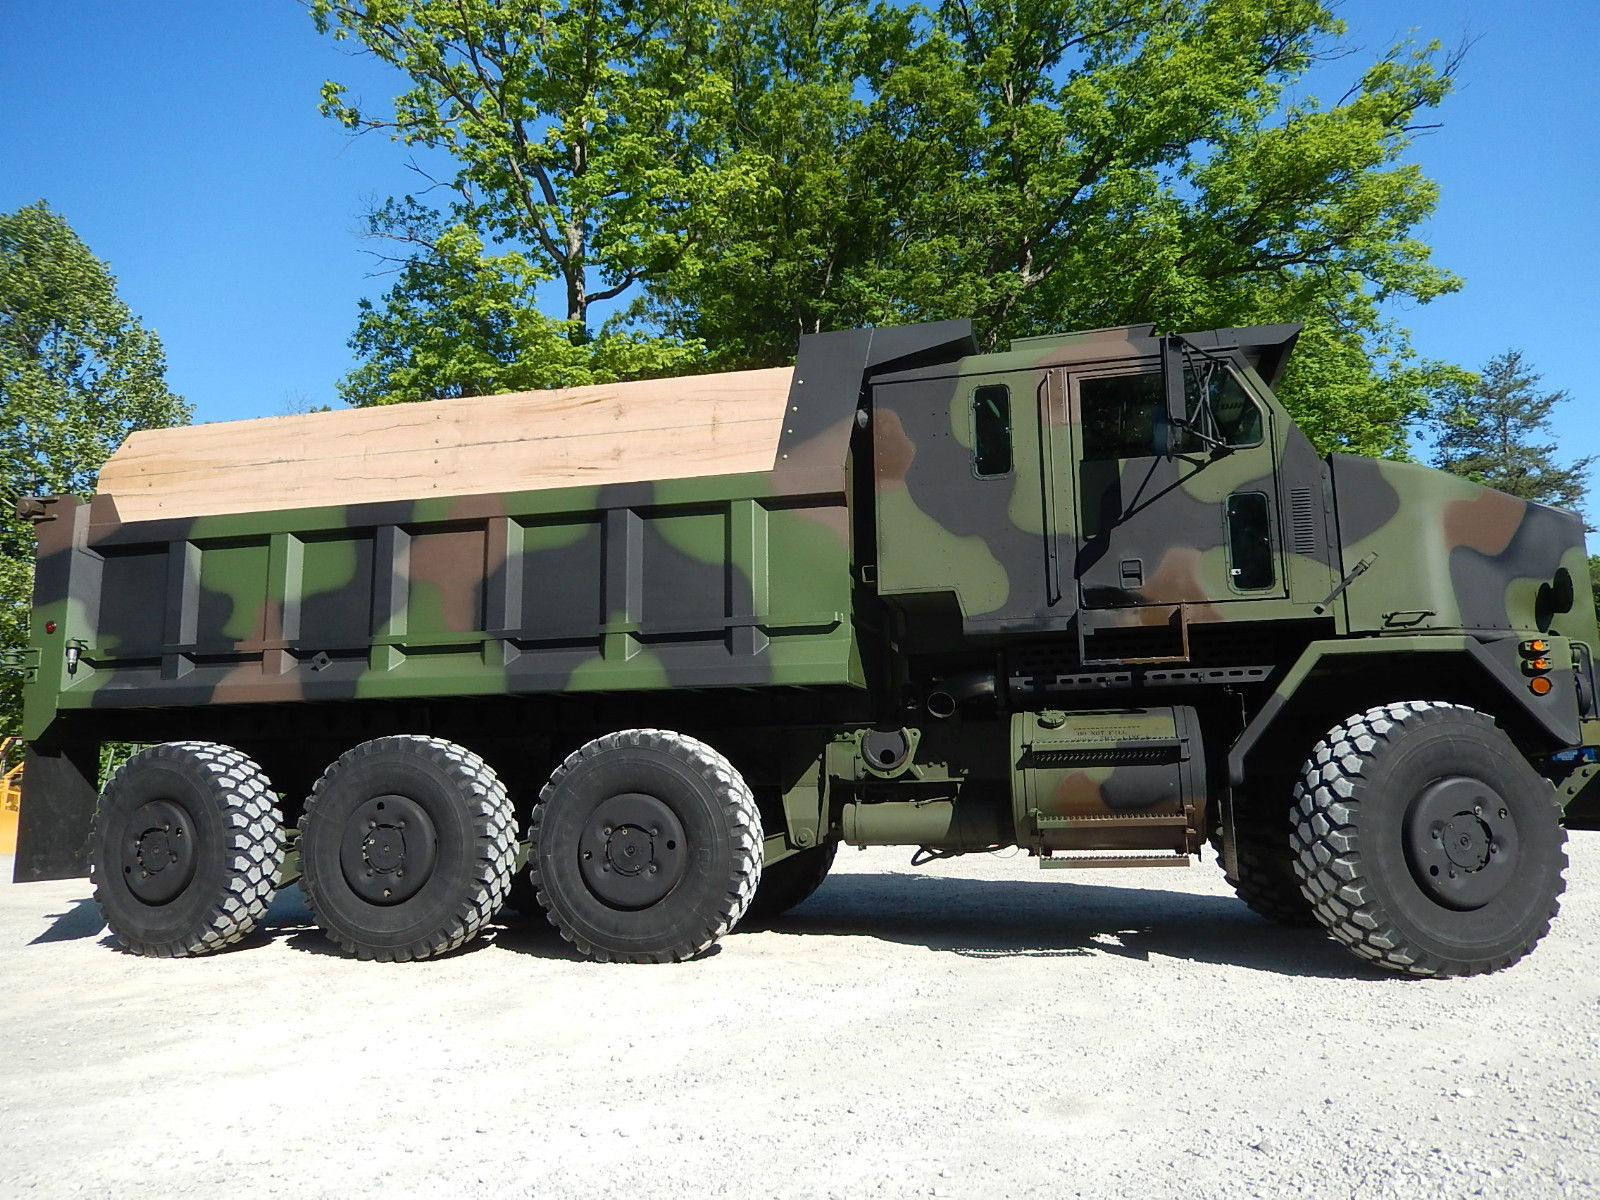 eight wheel drive military vehicles for sale autos post. Black Bedroom Furniture Sets. Home Design Ideas